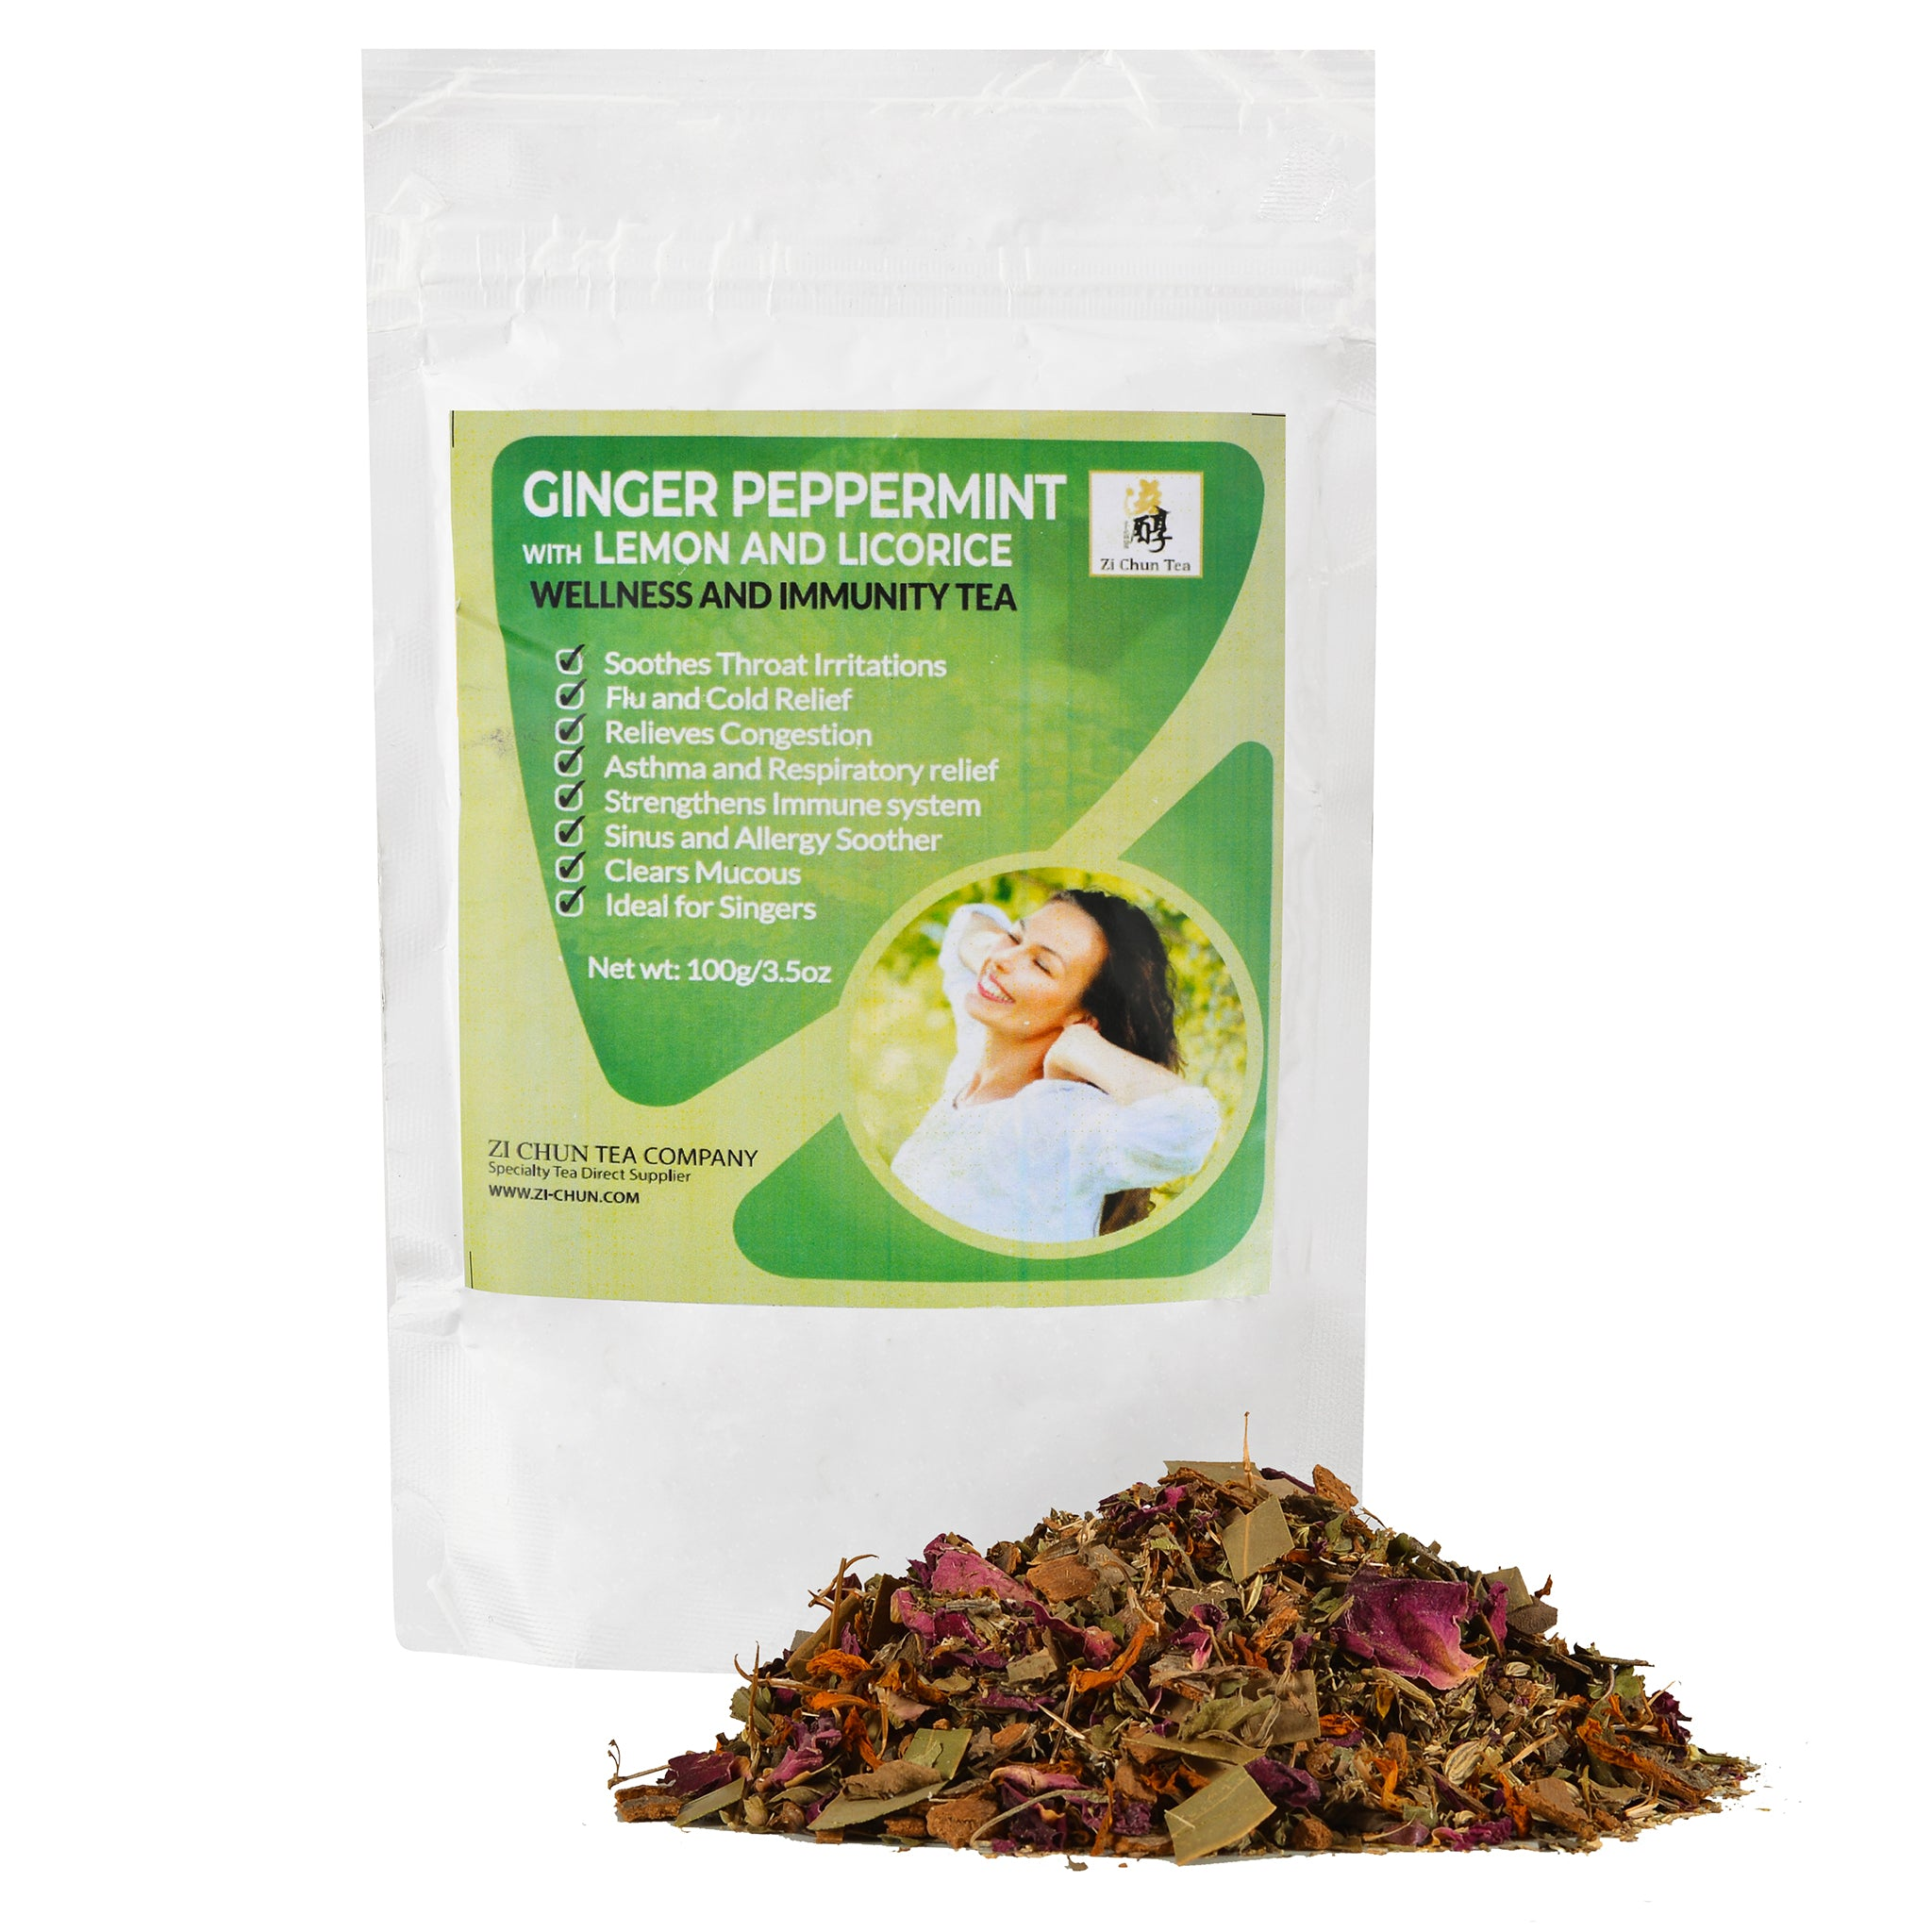 zi-chun-teas-ginger-peppermint-tea-with-lemon-and-licorice